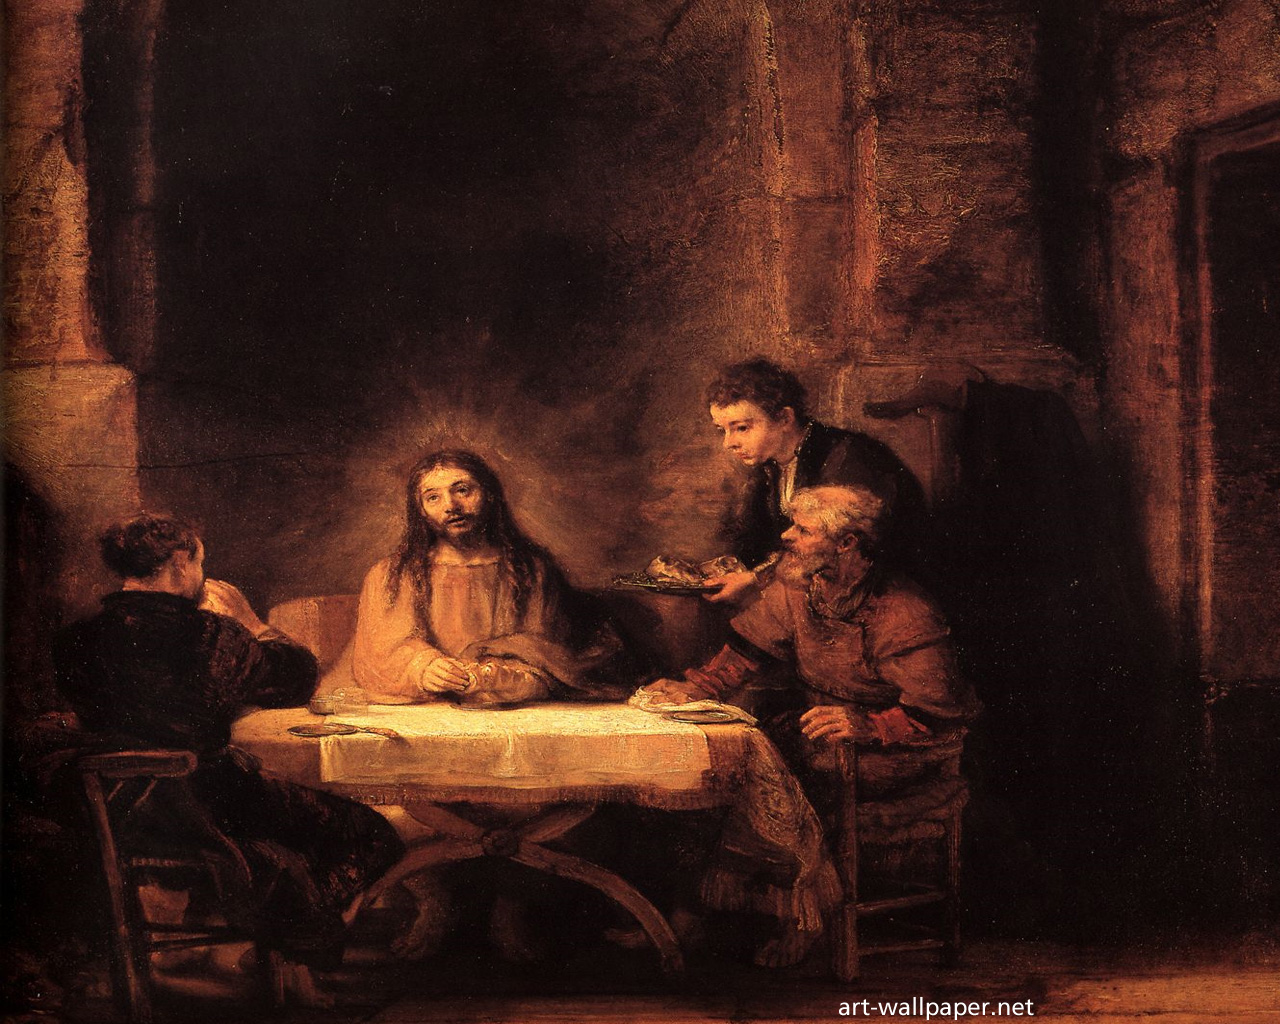 rembrandt-wallpaper-art-wallpapers